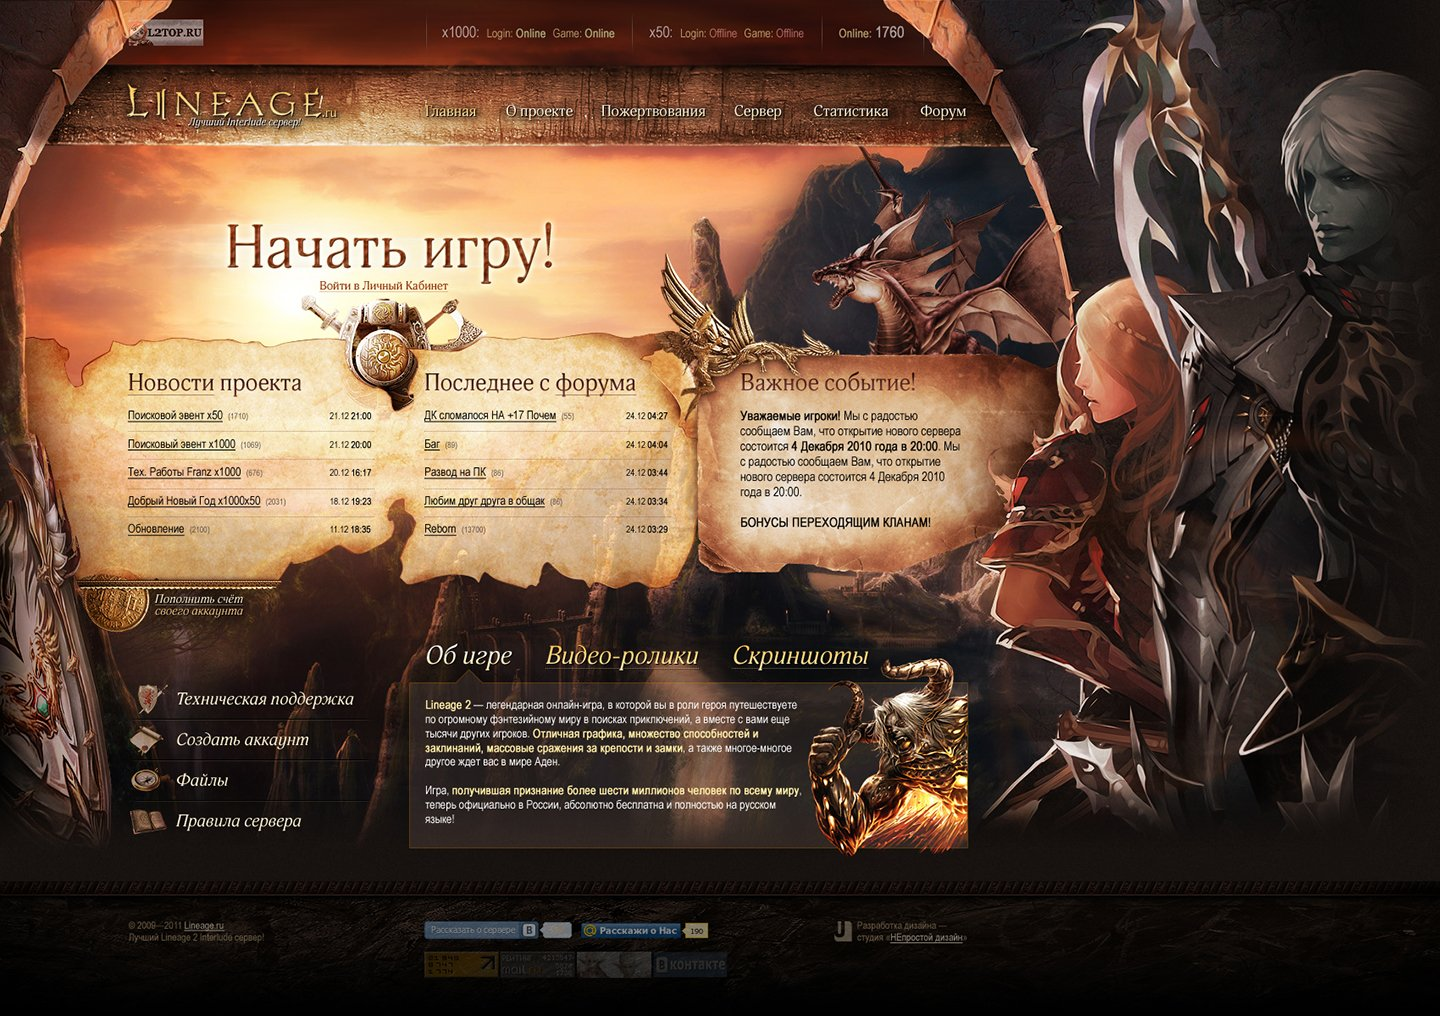 Lineage.ru > Website design for Lineage 2 private server. Main page